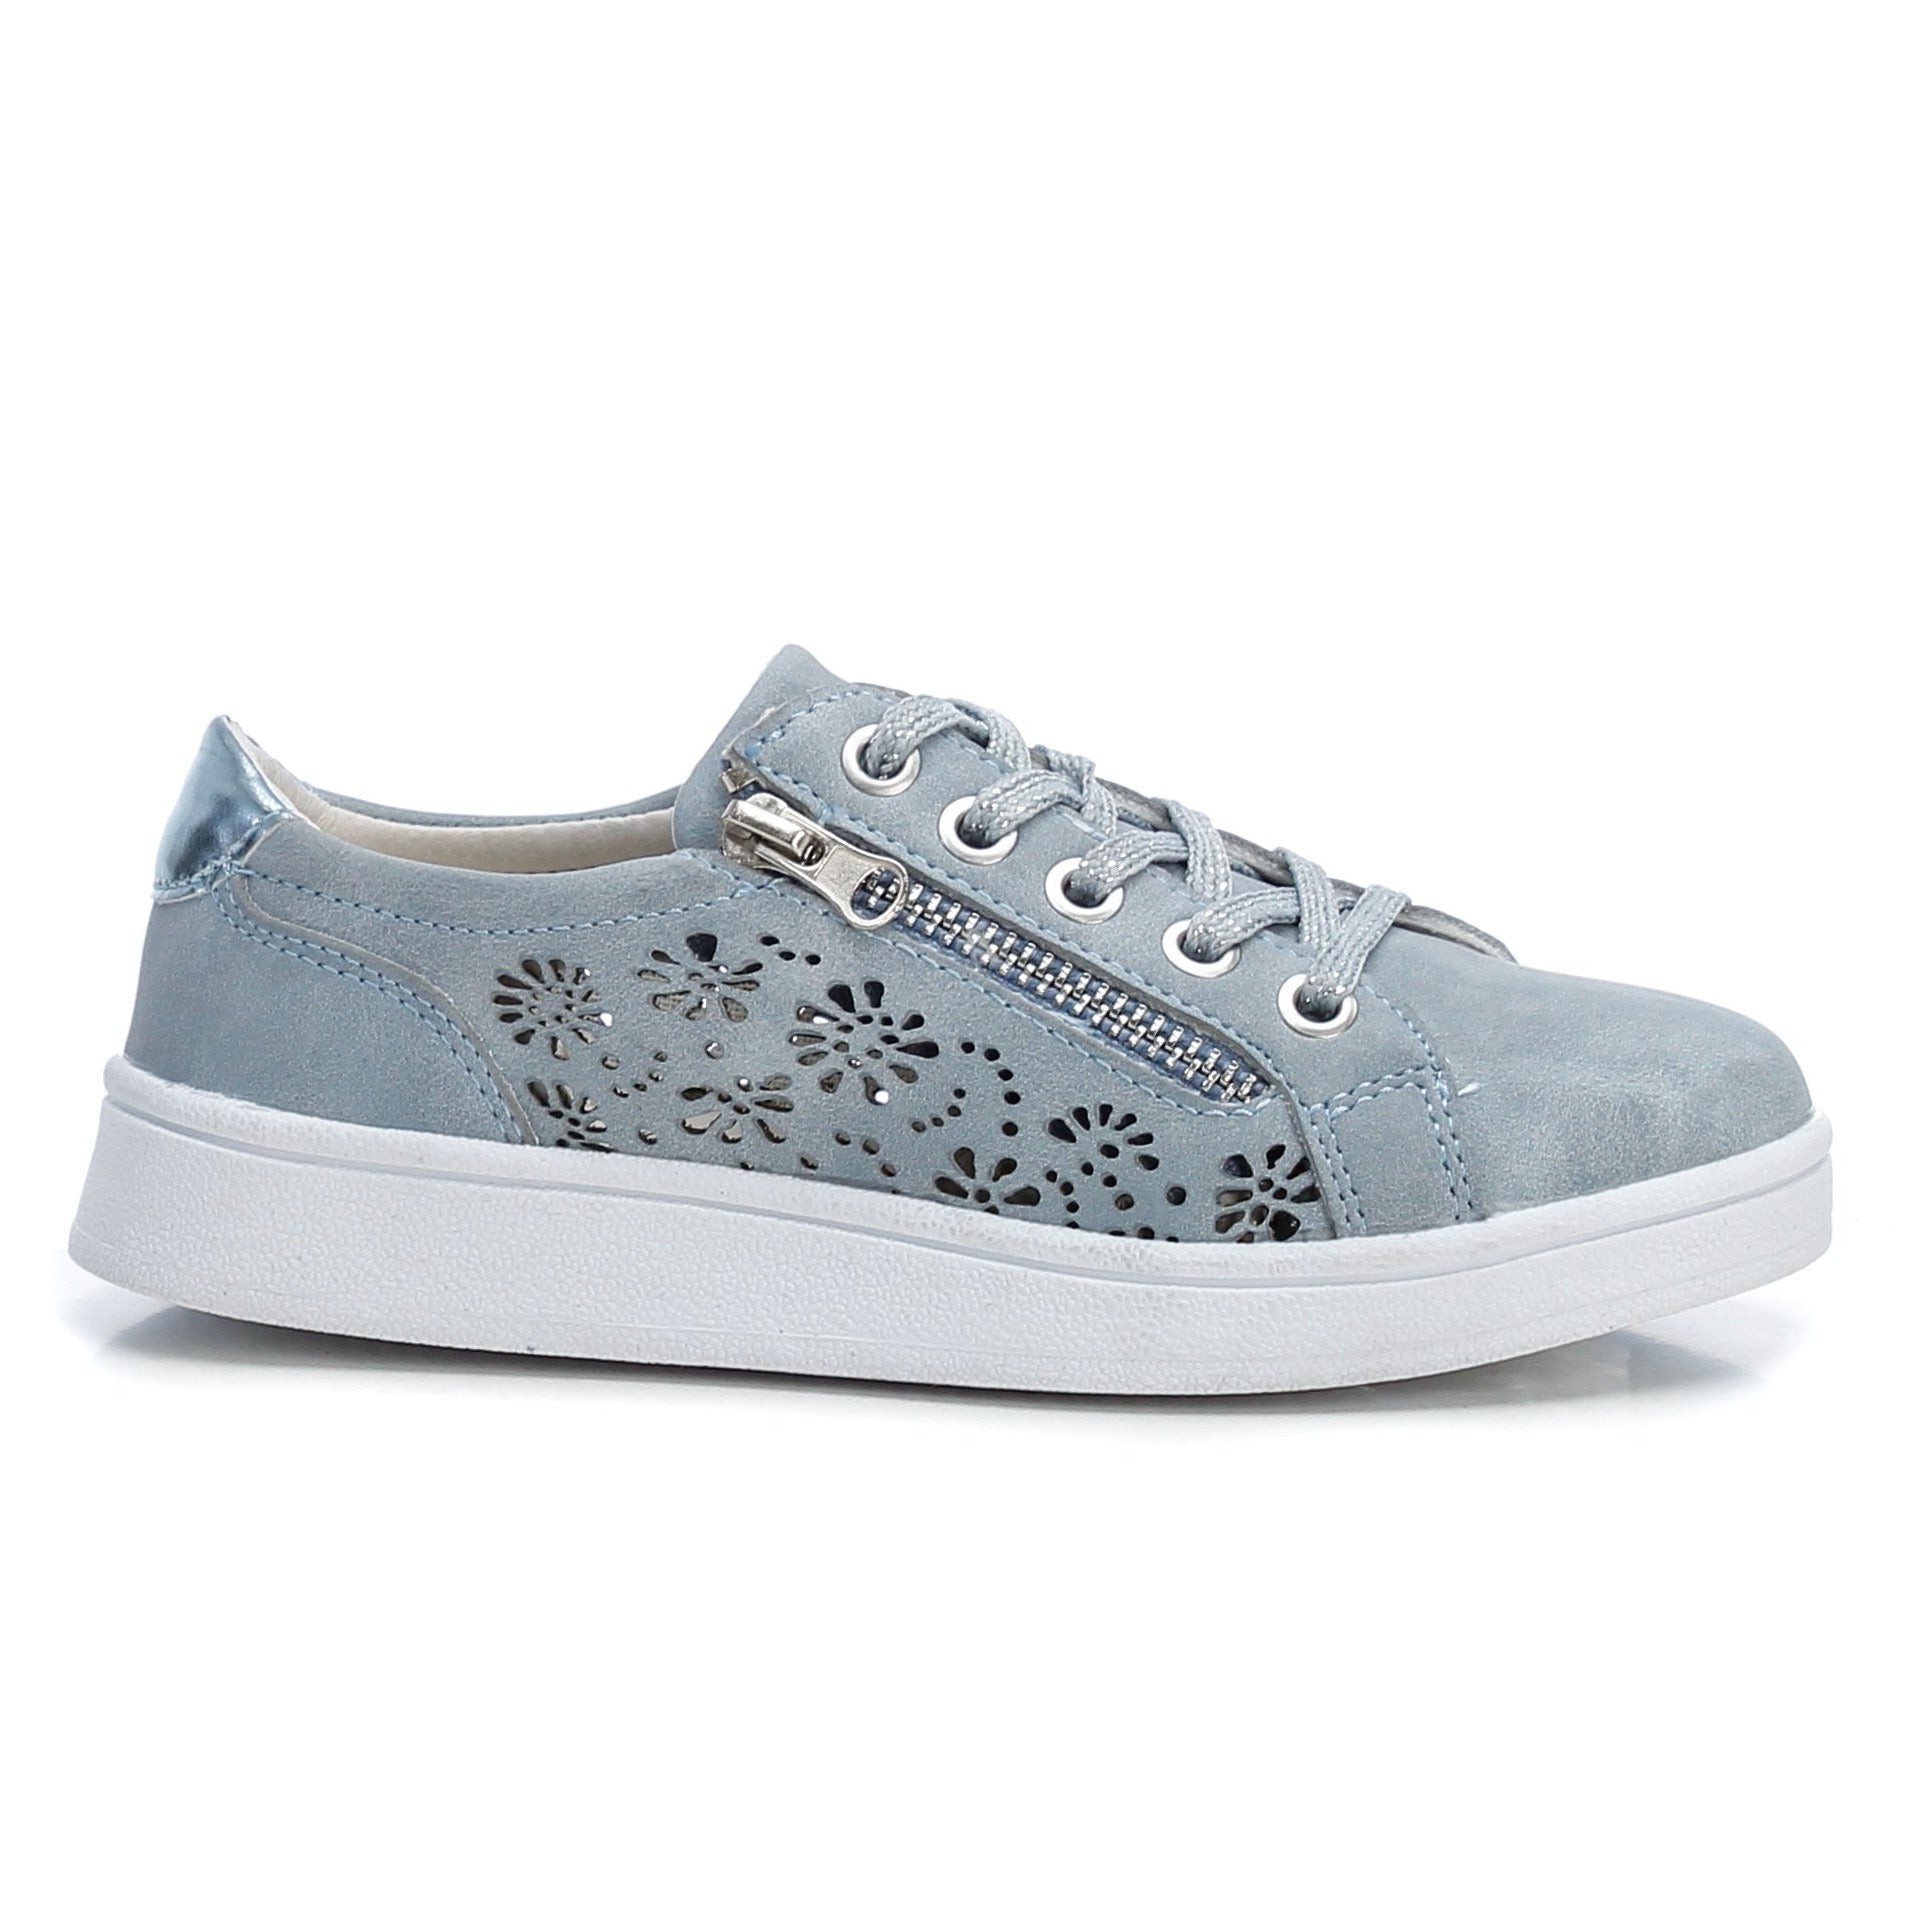 XTI - Kids Denim Blue Perforated Laced Trainers